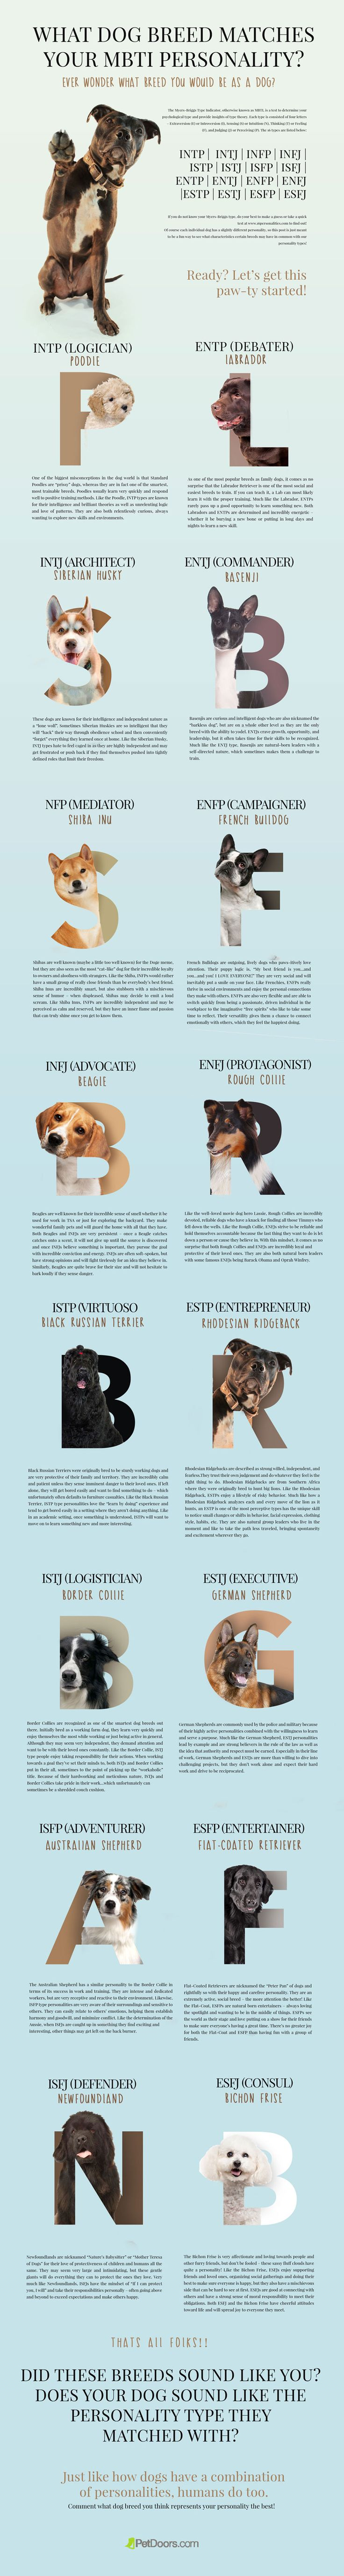 What Dog Breed Matches Your MBTI Personality? #infographicsarchive